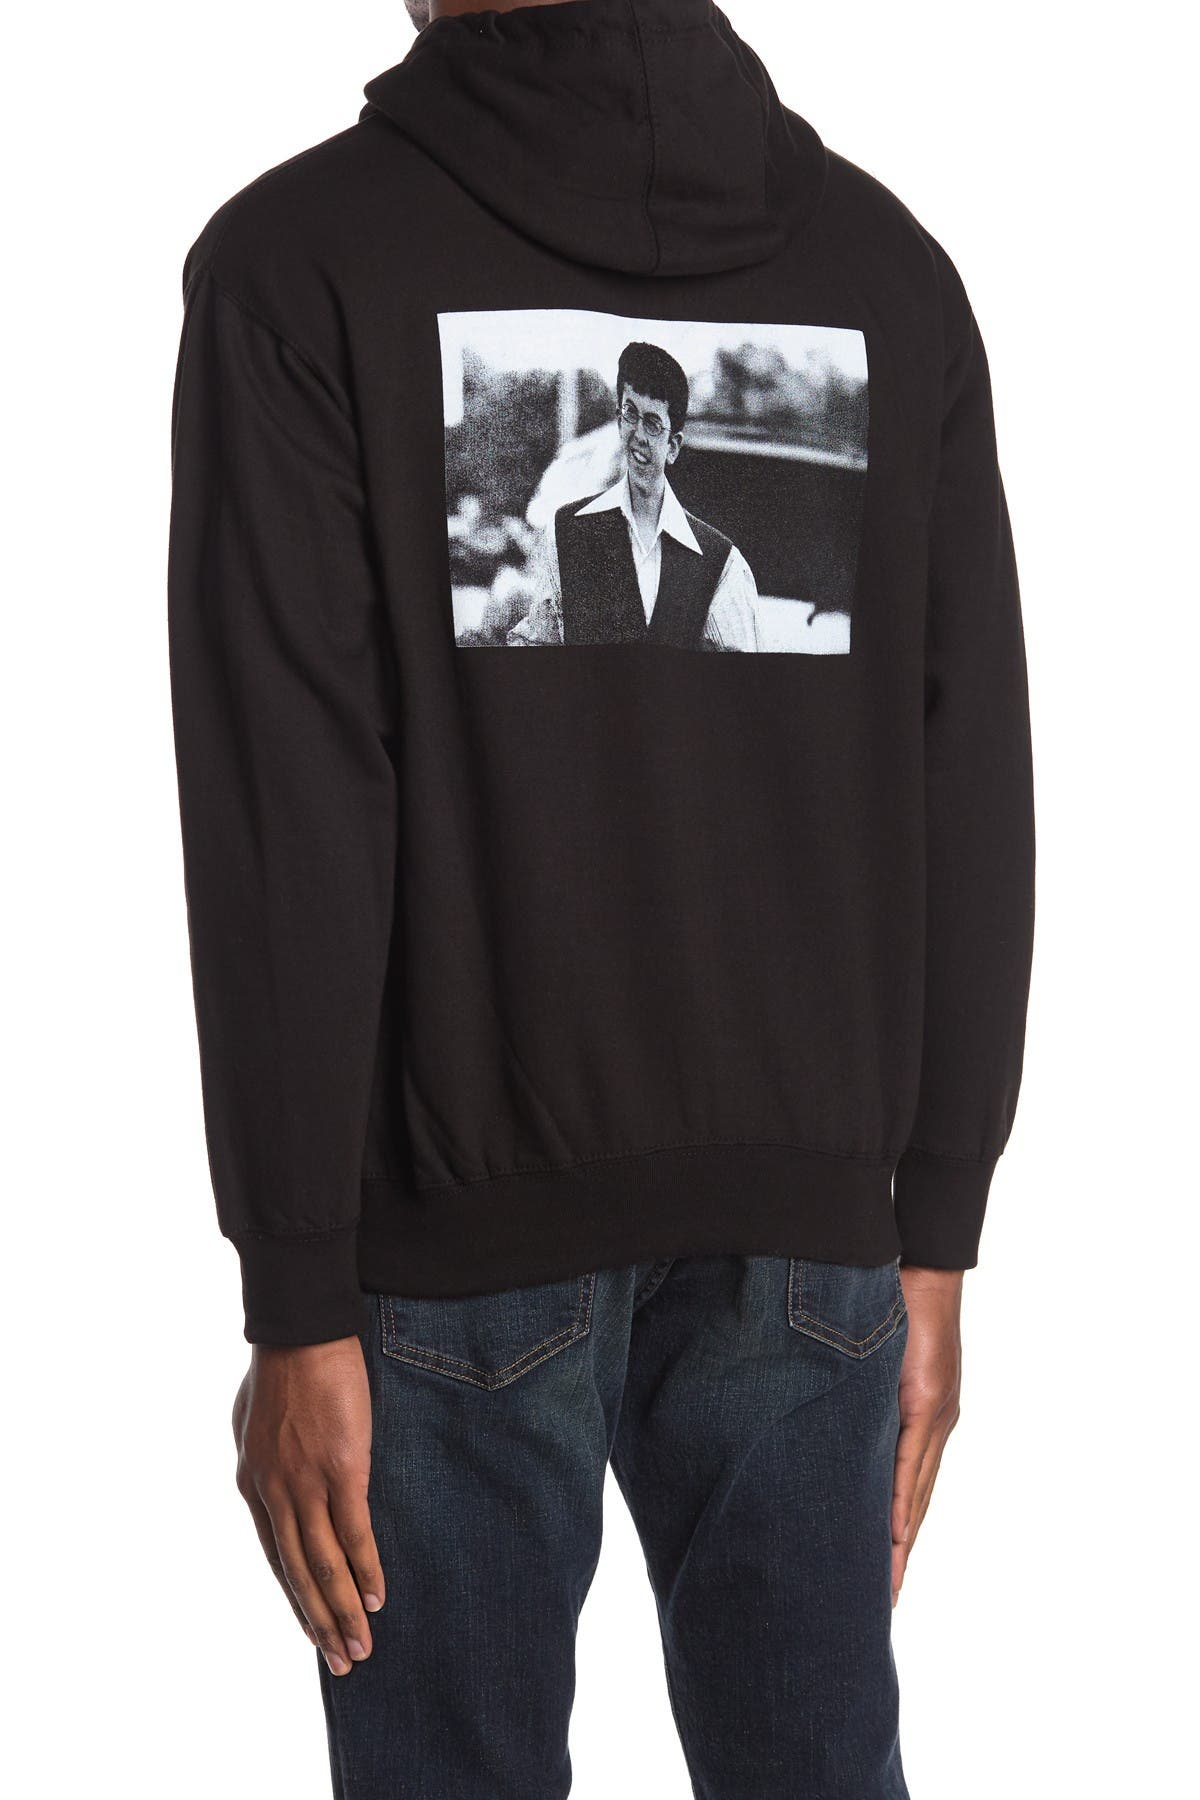 Image of Philcos Superbad Pullover Hoodie